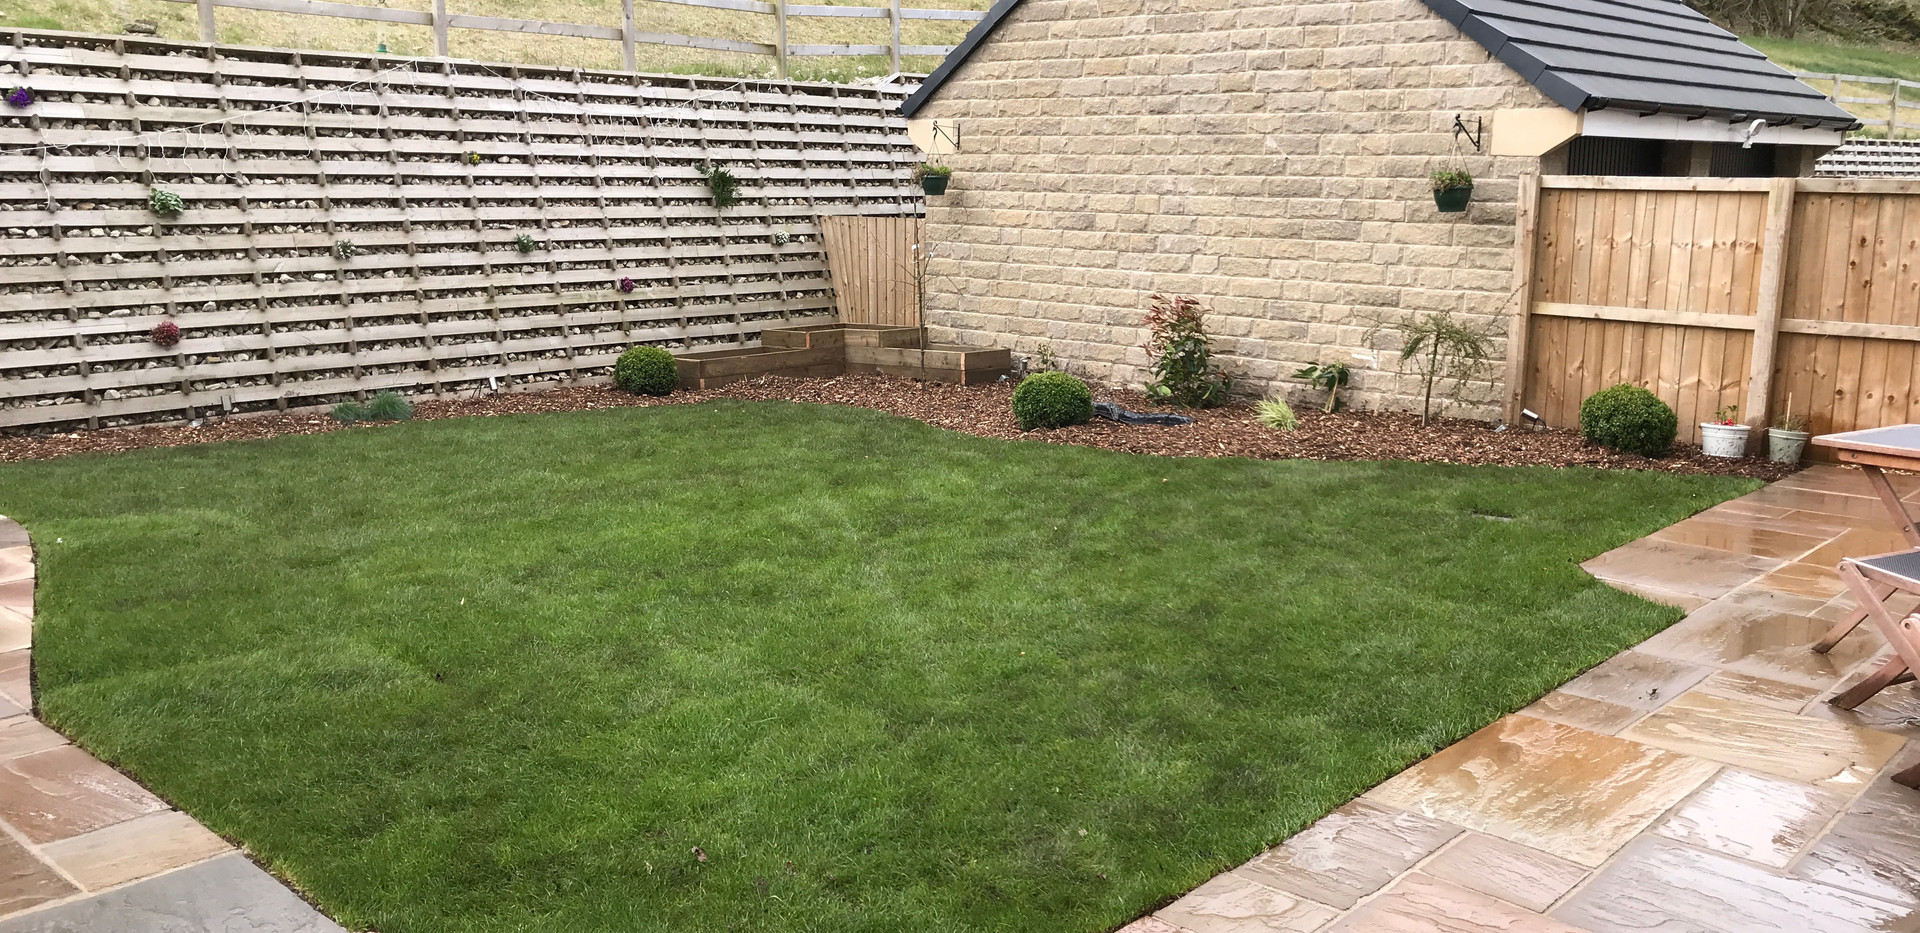 Patio and New Lawn